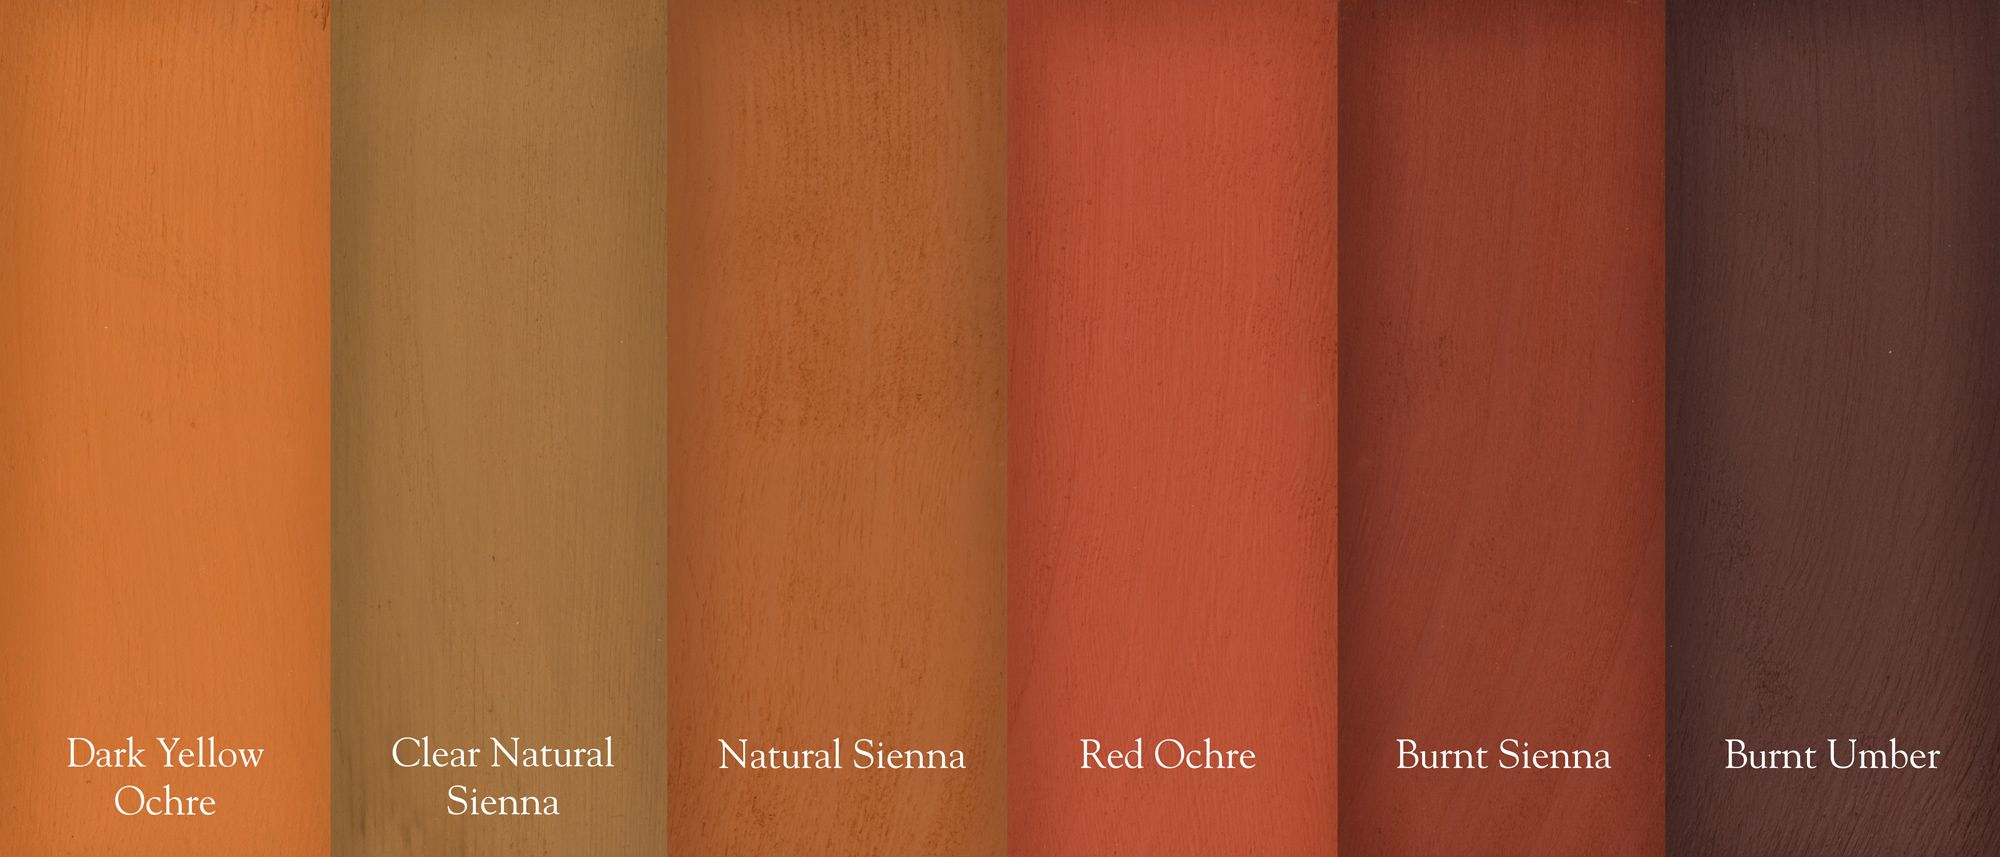 Flour Paint Colors Antique Recipe Using Want To Use On The Hives